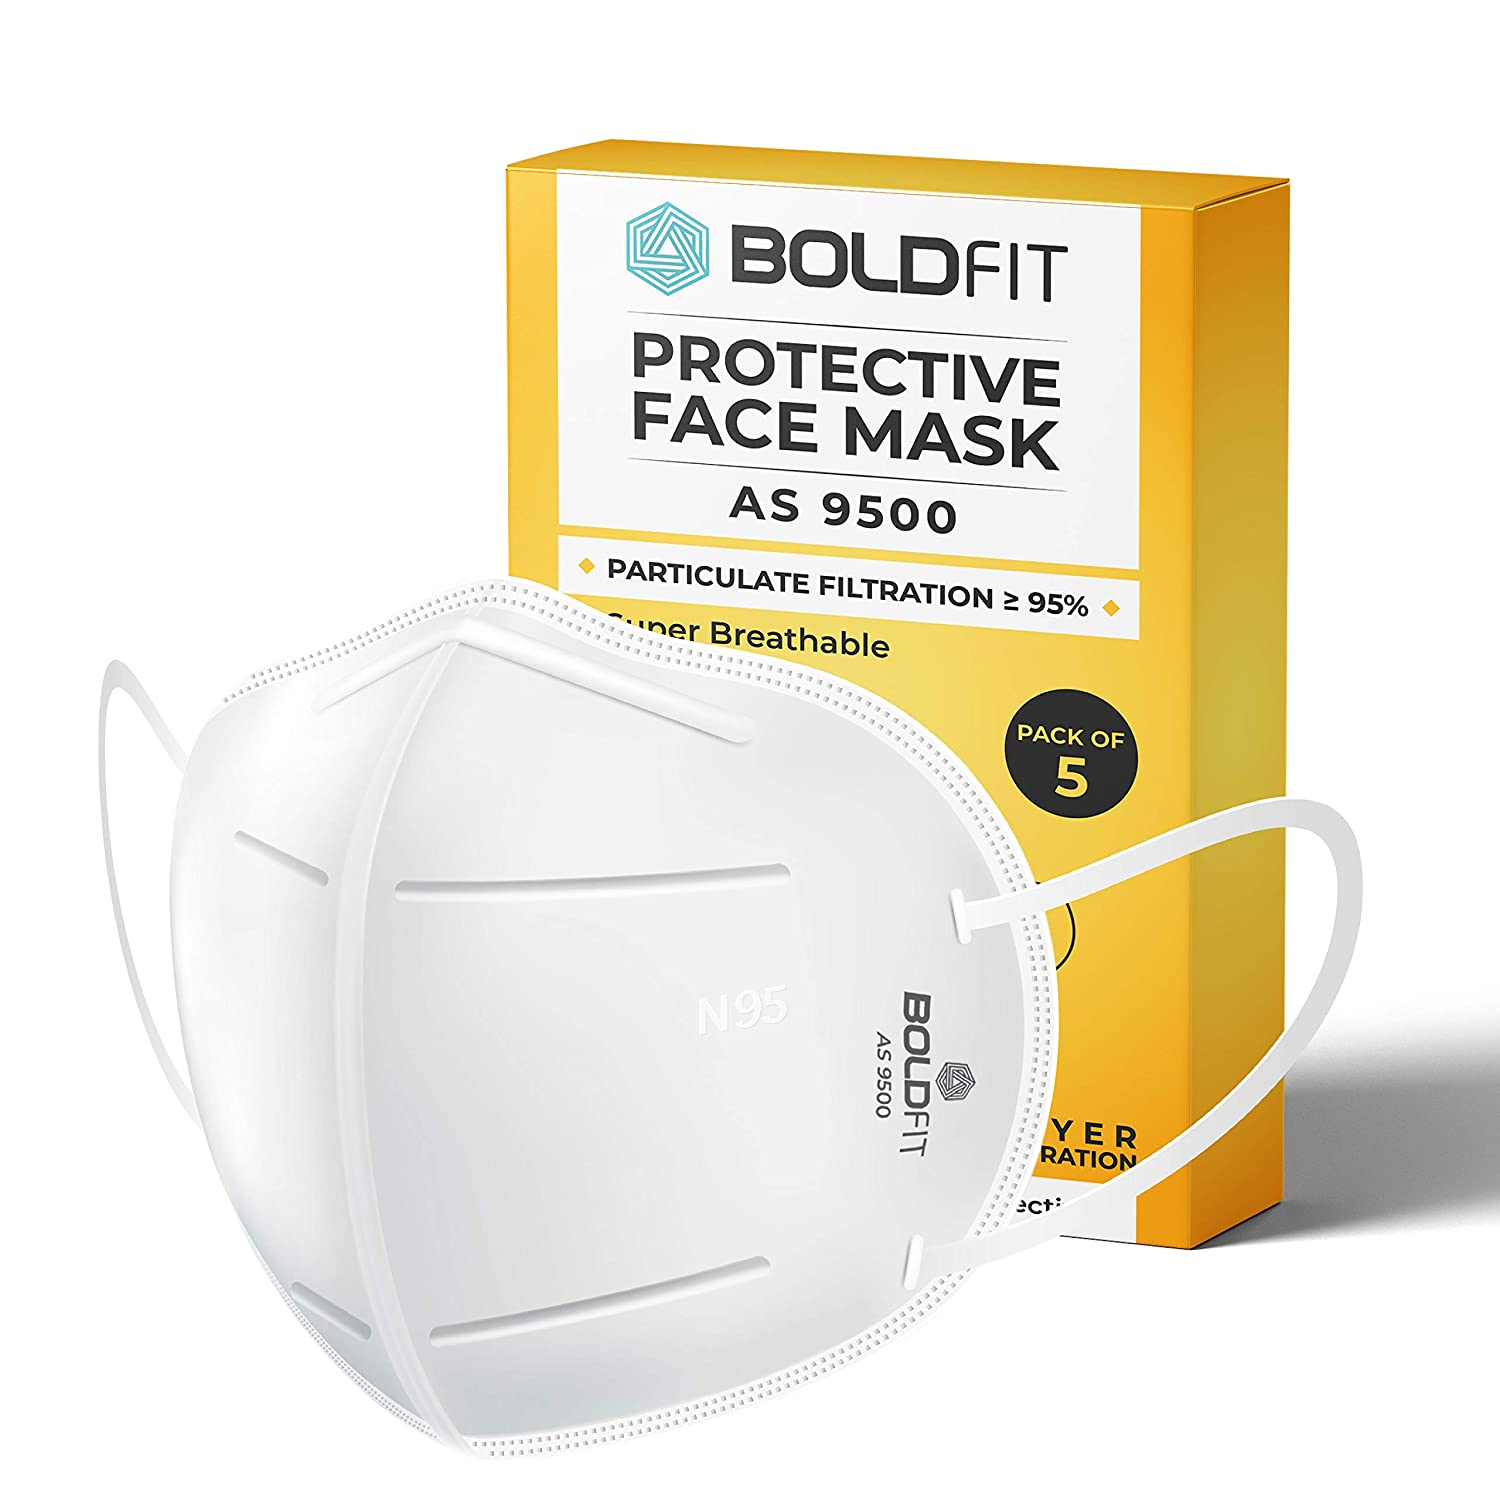 Boldfit N95 mask for face (Pack of 5) Anti Pollution, protective. Third Party Tested by manufacturer at SGS & Ministry of Textiles